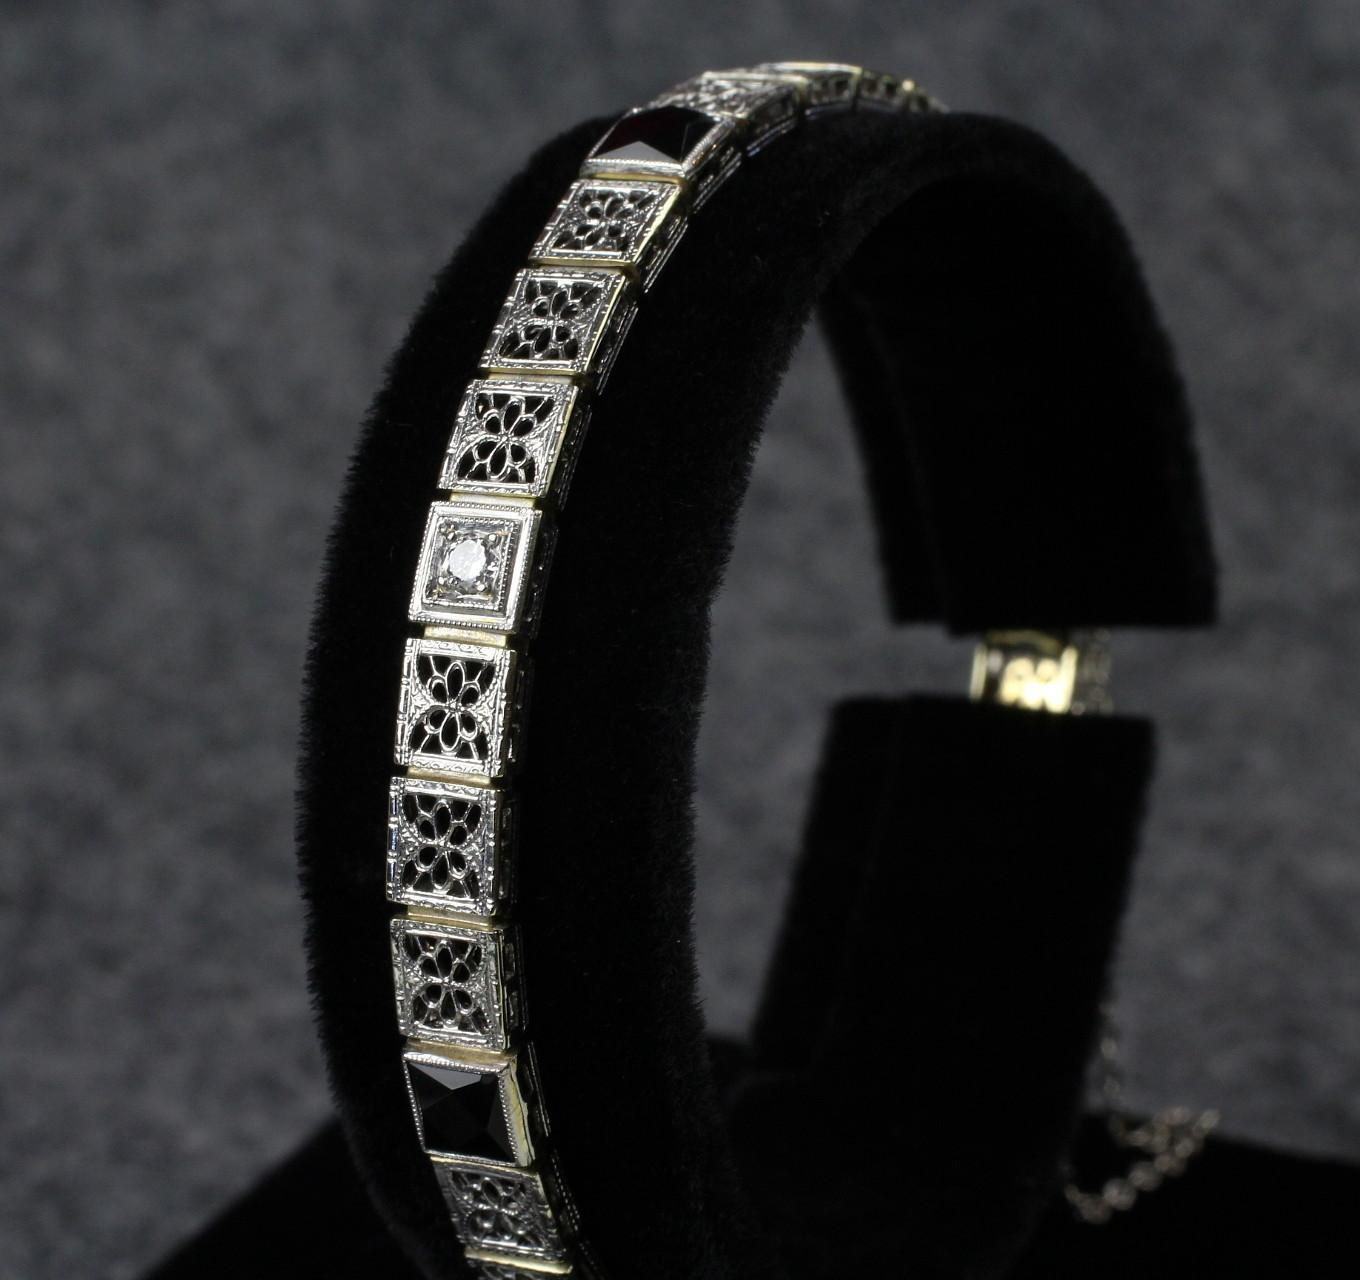 Vintage 14K White Gold Filigree Bracelet with Diamonds & Onyx